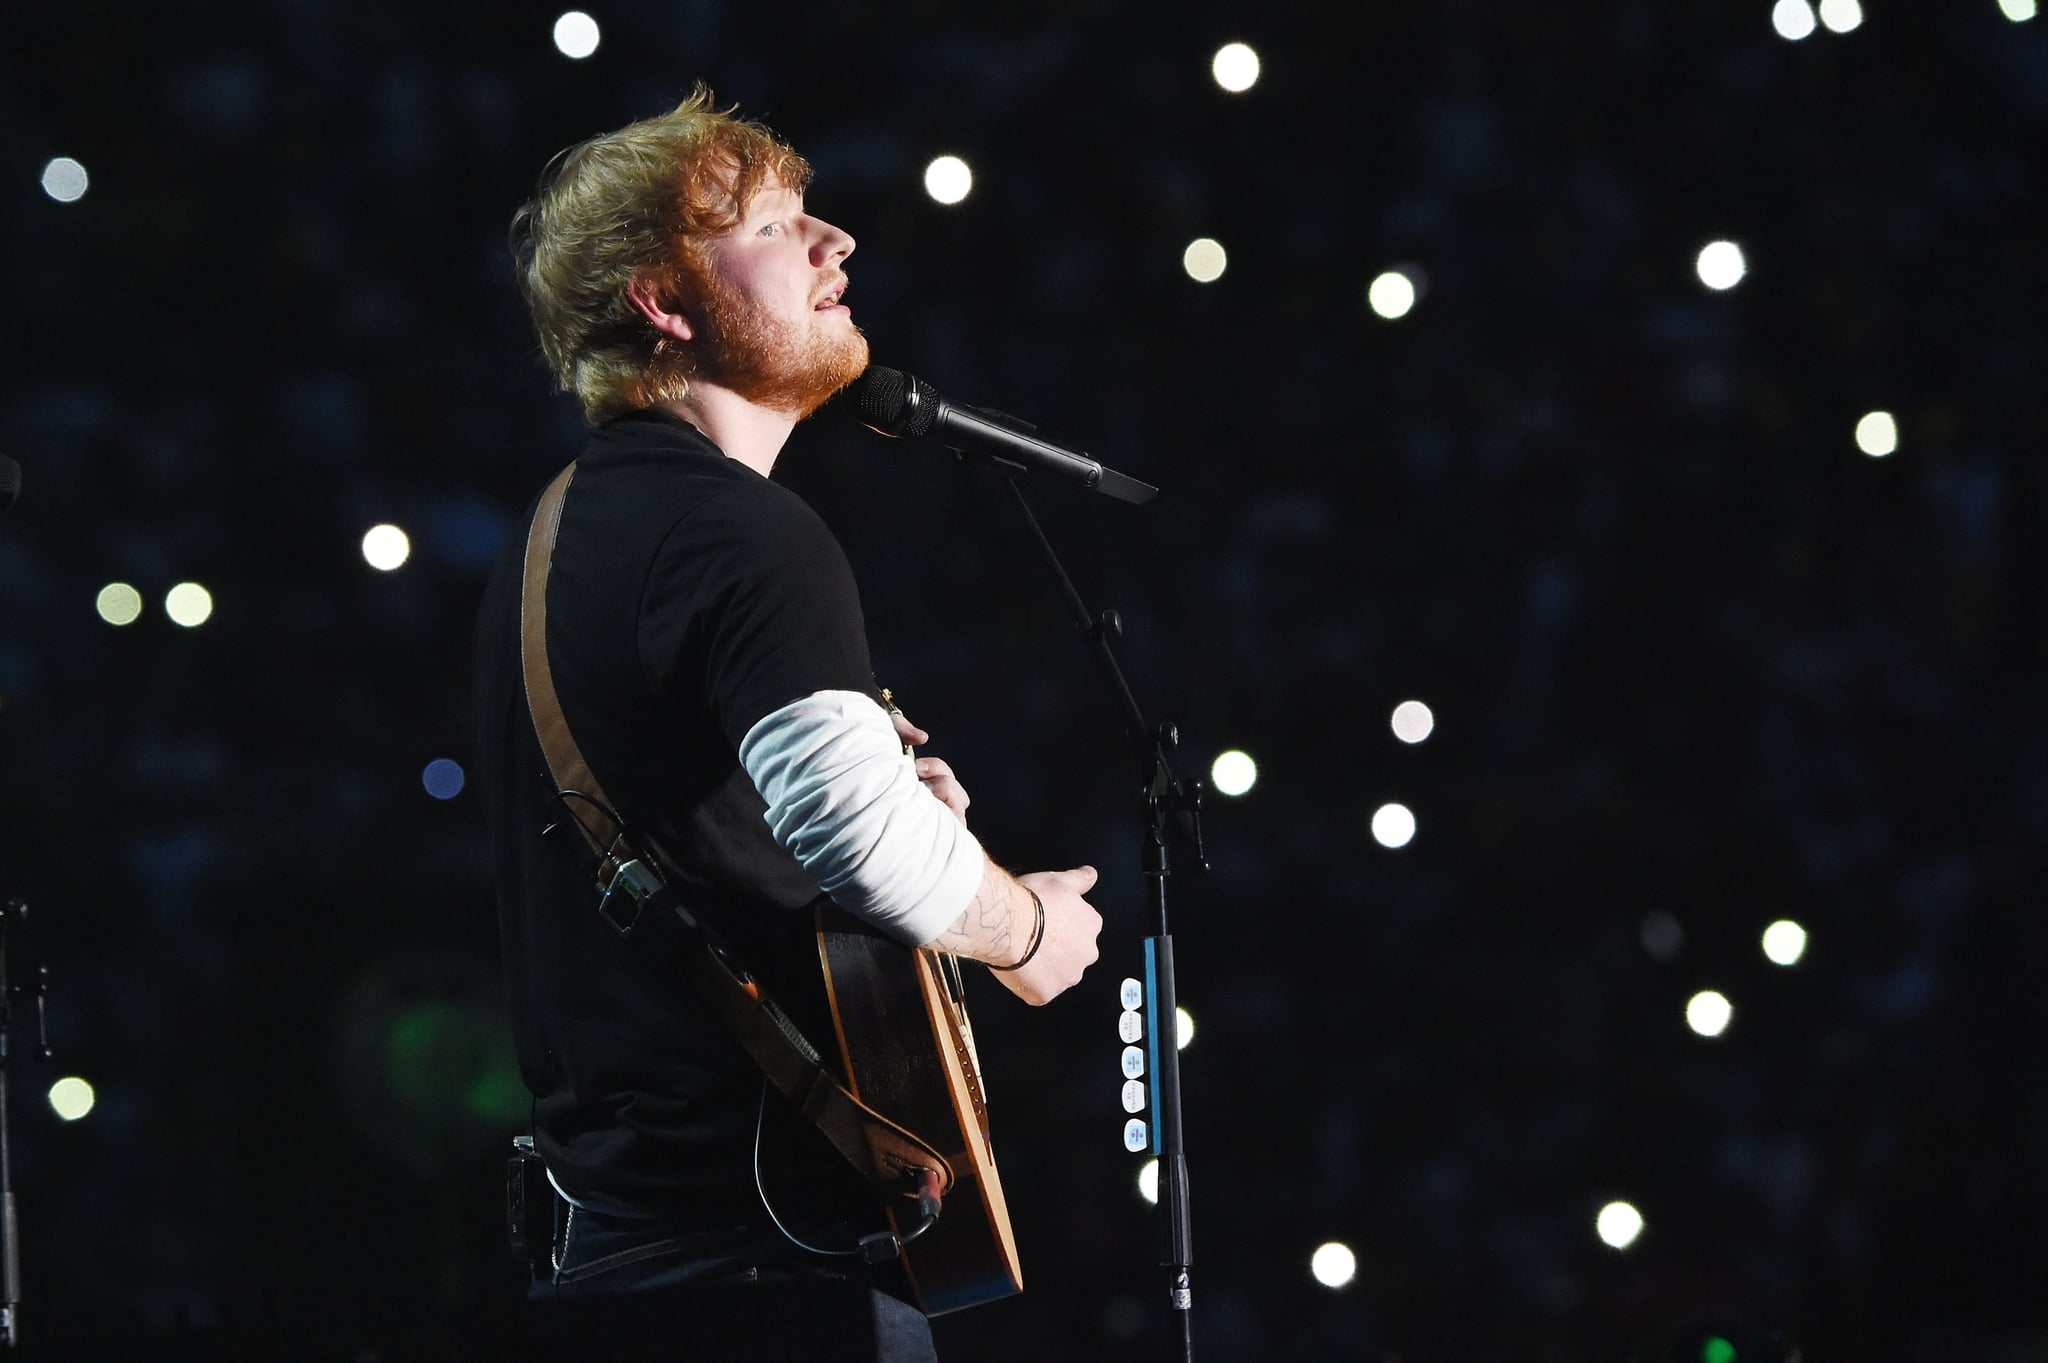 JOHANNESBURG, SOUTH AFRICA - DECEMBER 02:  Ed Sheeran performs during the Global Citizen Festival: Mandela 100 at FNB Stadium on December 2, 2018 in Johannesburg, South Africa.  (Photo by Kevin Mazur/Getty Images for Global Citizen Festival: Mandela 100)